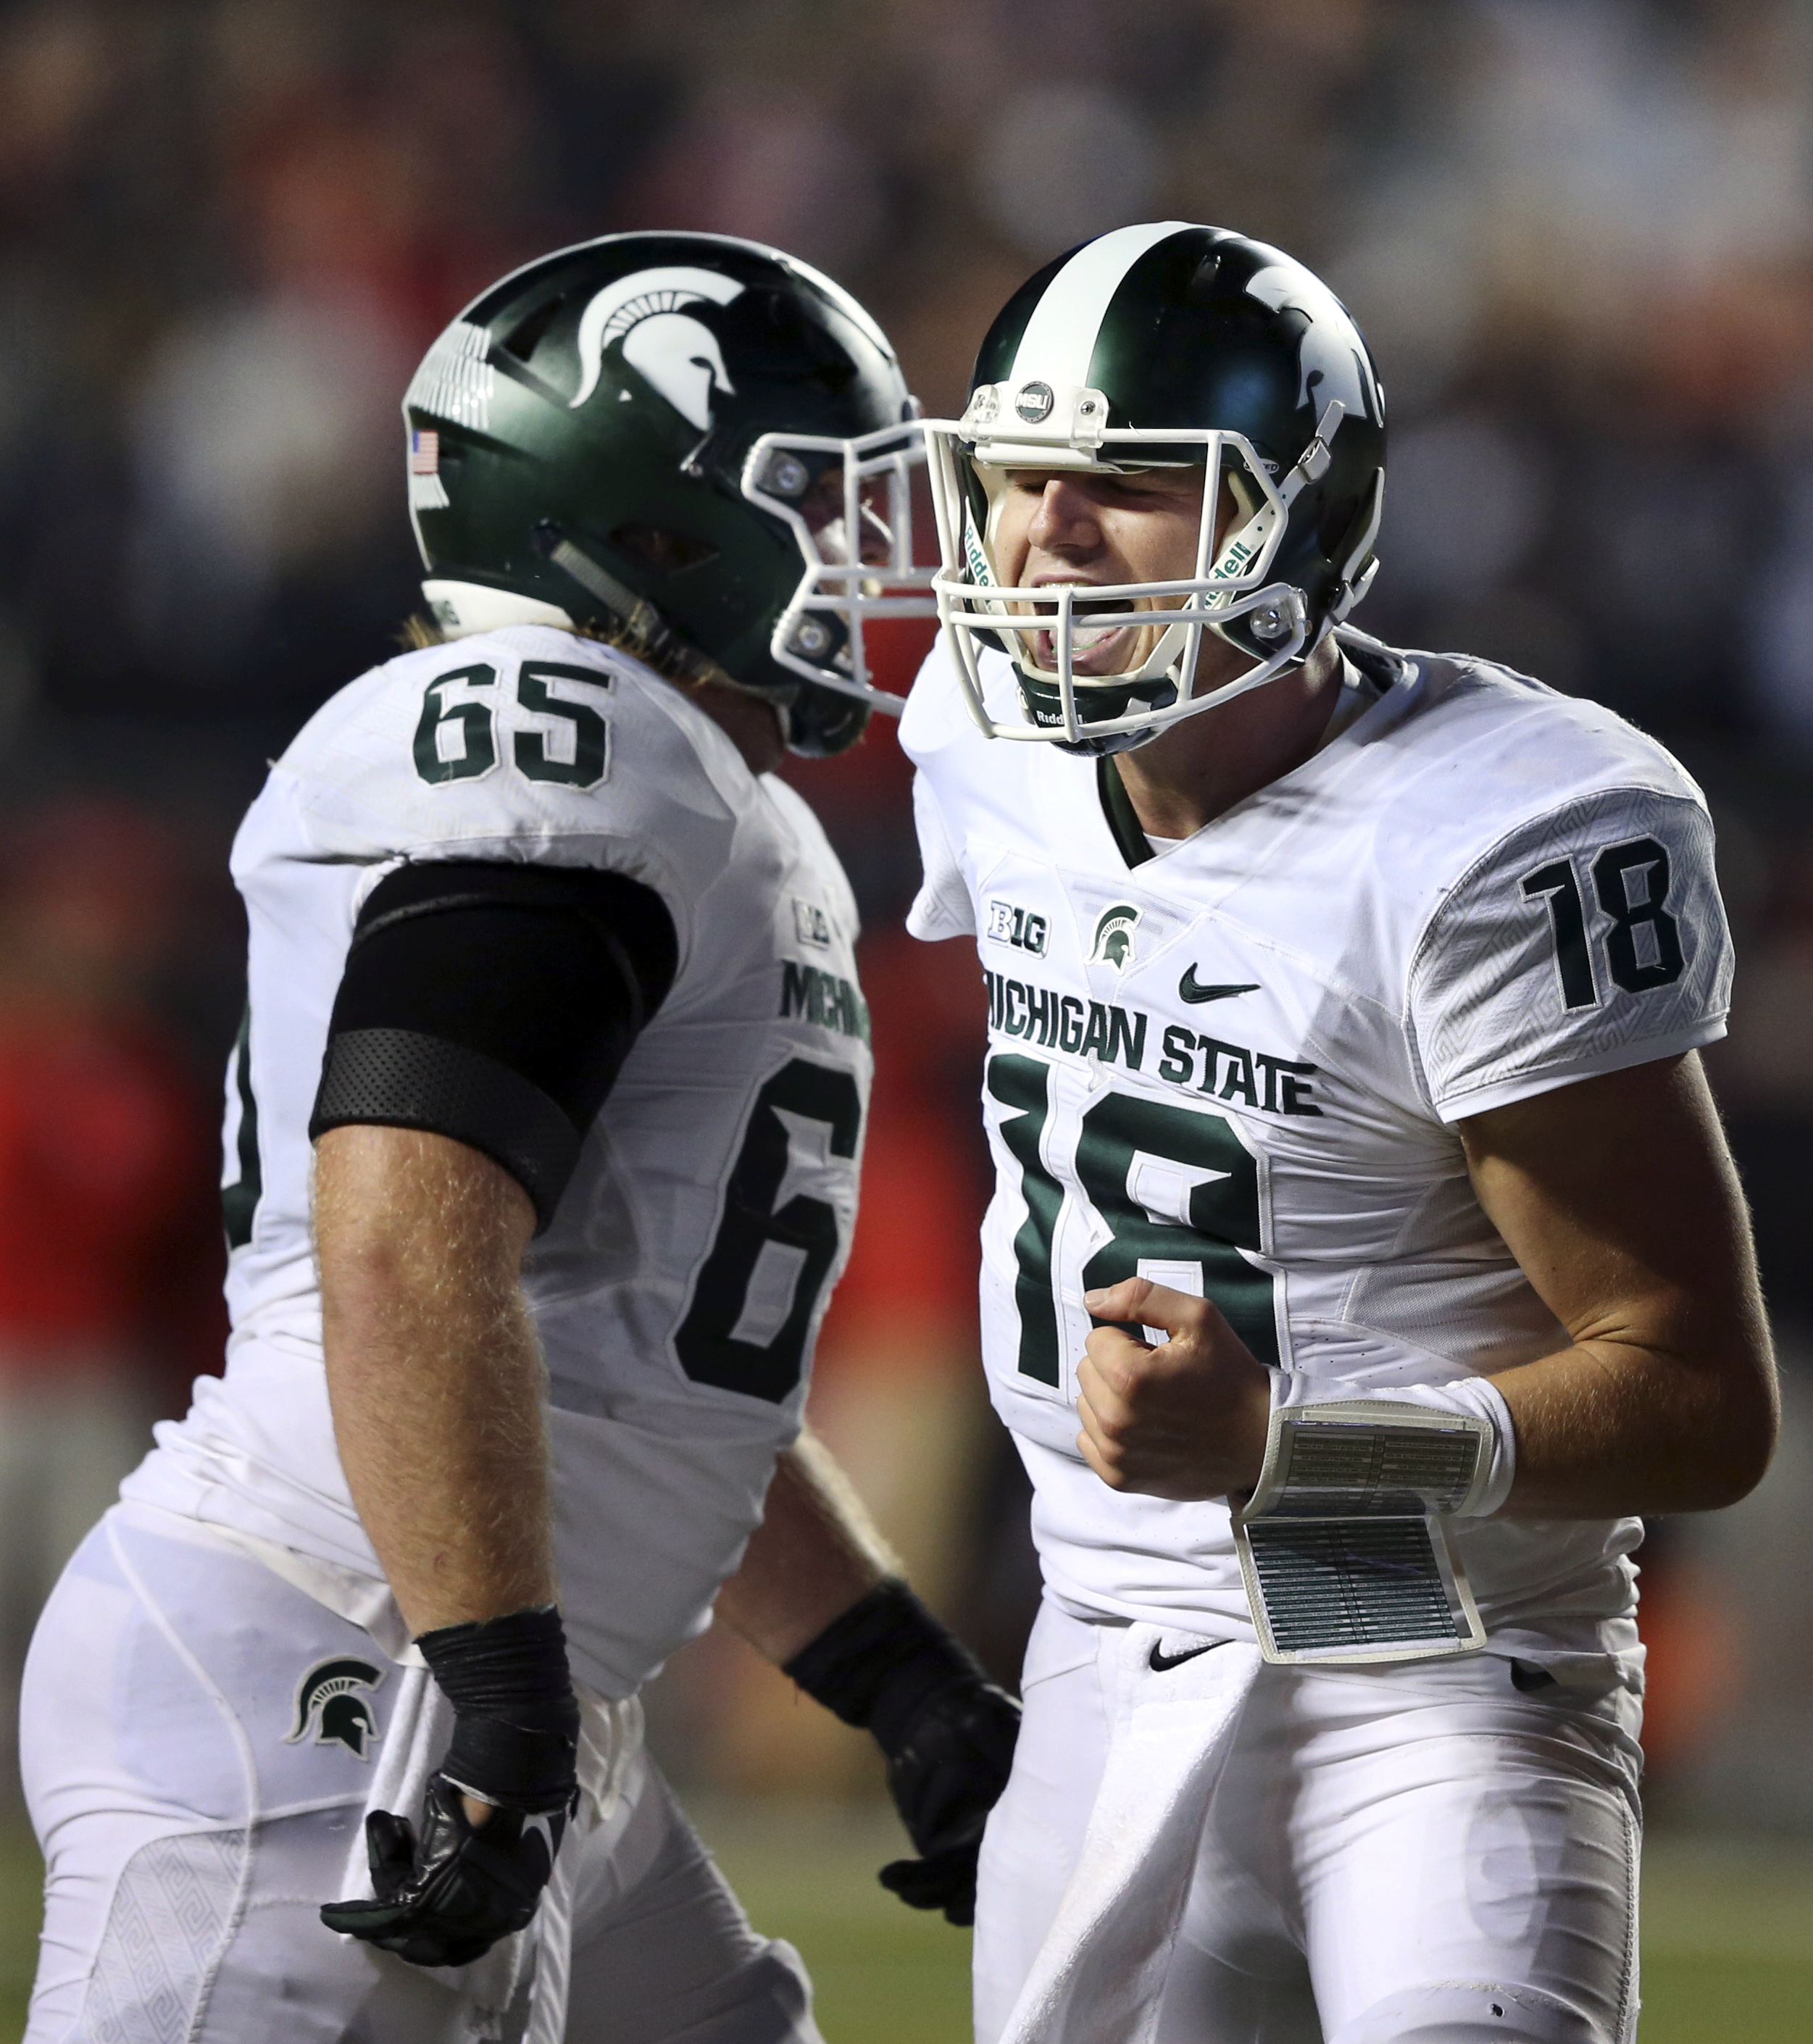 Michigan State quarterback Connor Cook (18) celebrates with offensive lineman Brian Allen (65) late in the second half of an NCAA college football game against Rutgers Saturday, Oct. 10, 2015, in Piscataway, N.J. Michigan State won 31-24. (AP Photo/Mel Ev